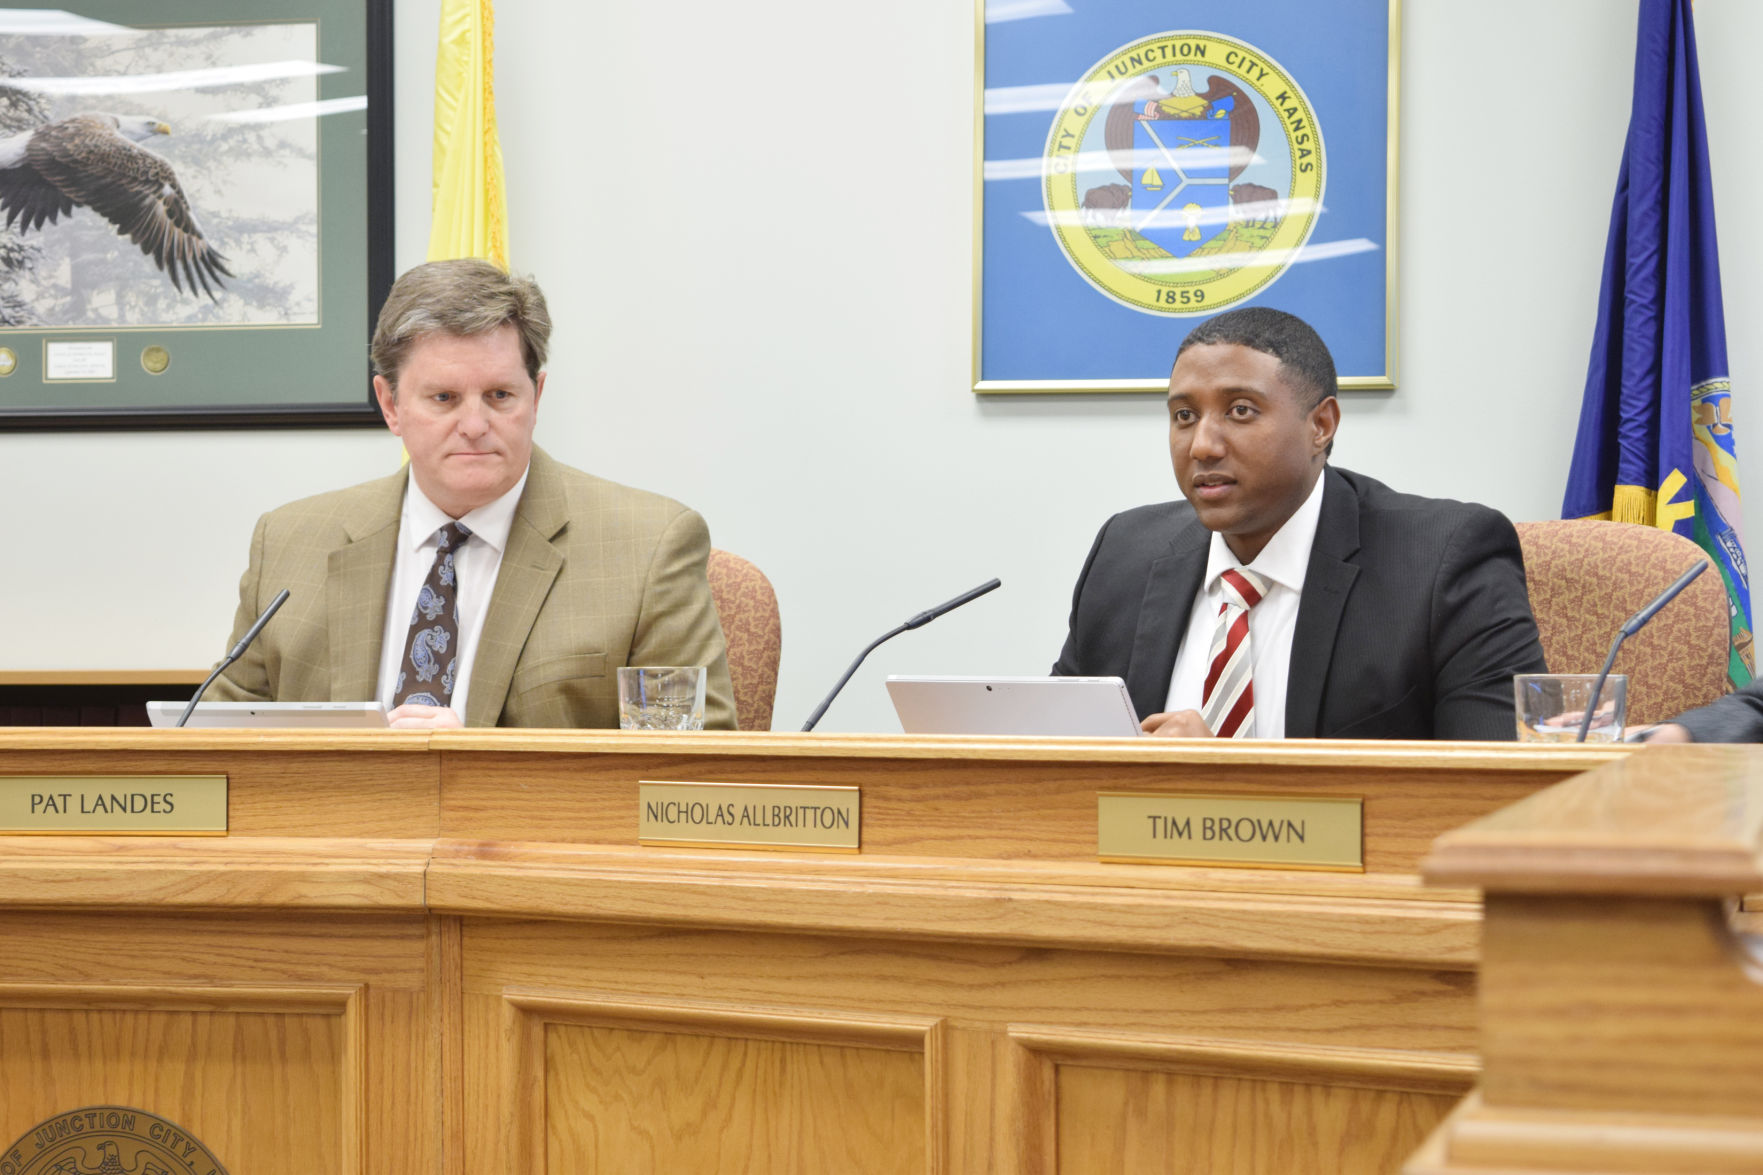 Commissioners approve waiver of payment to allow housing authority to make renovations